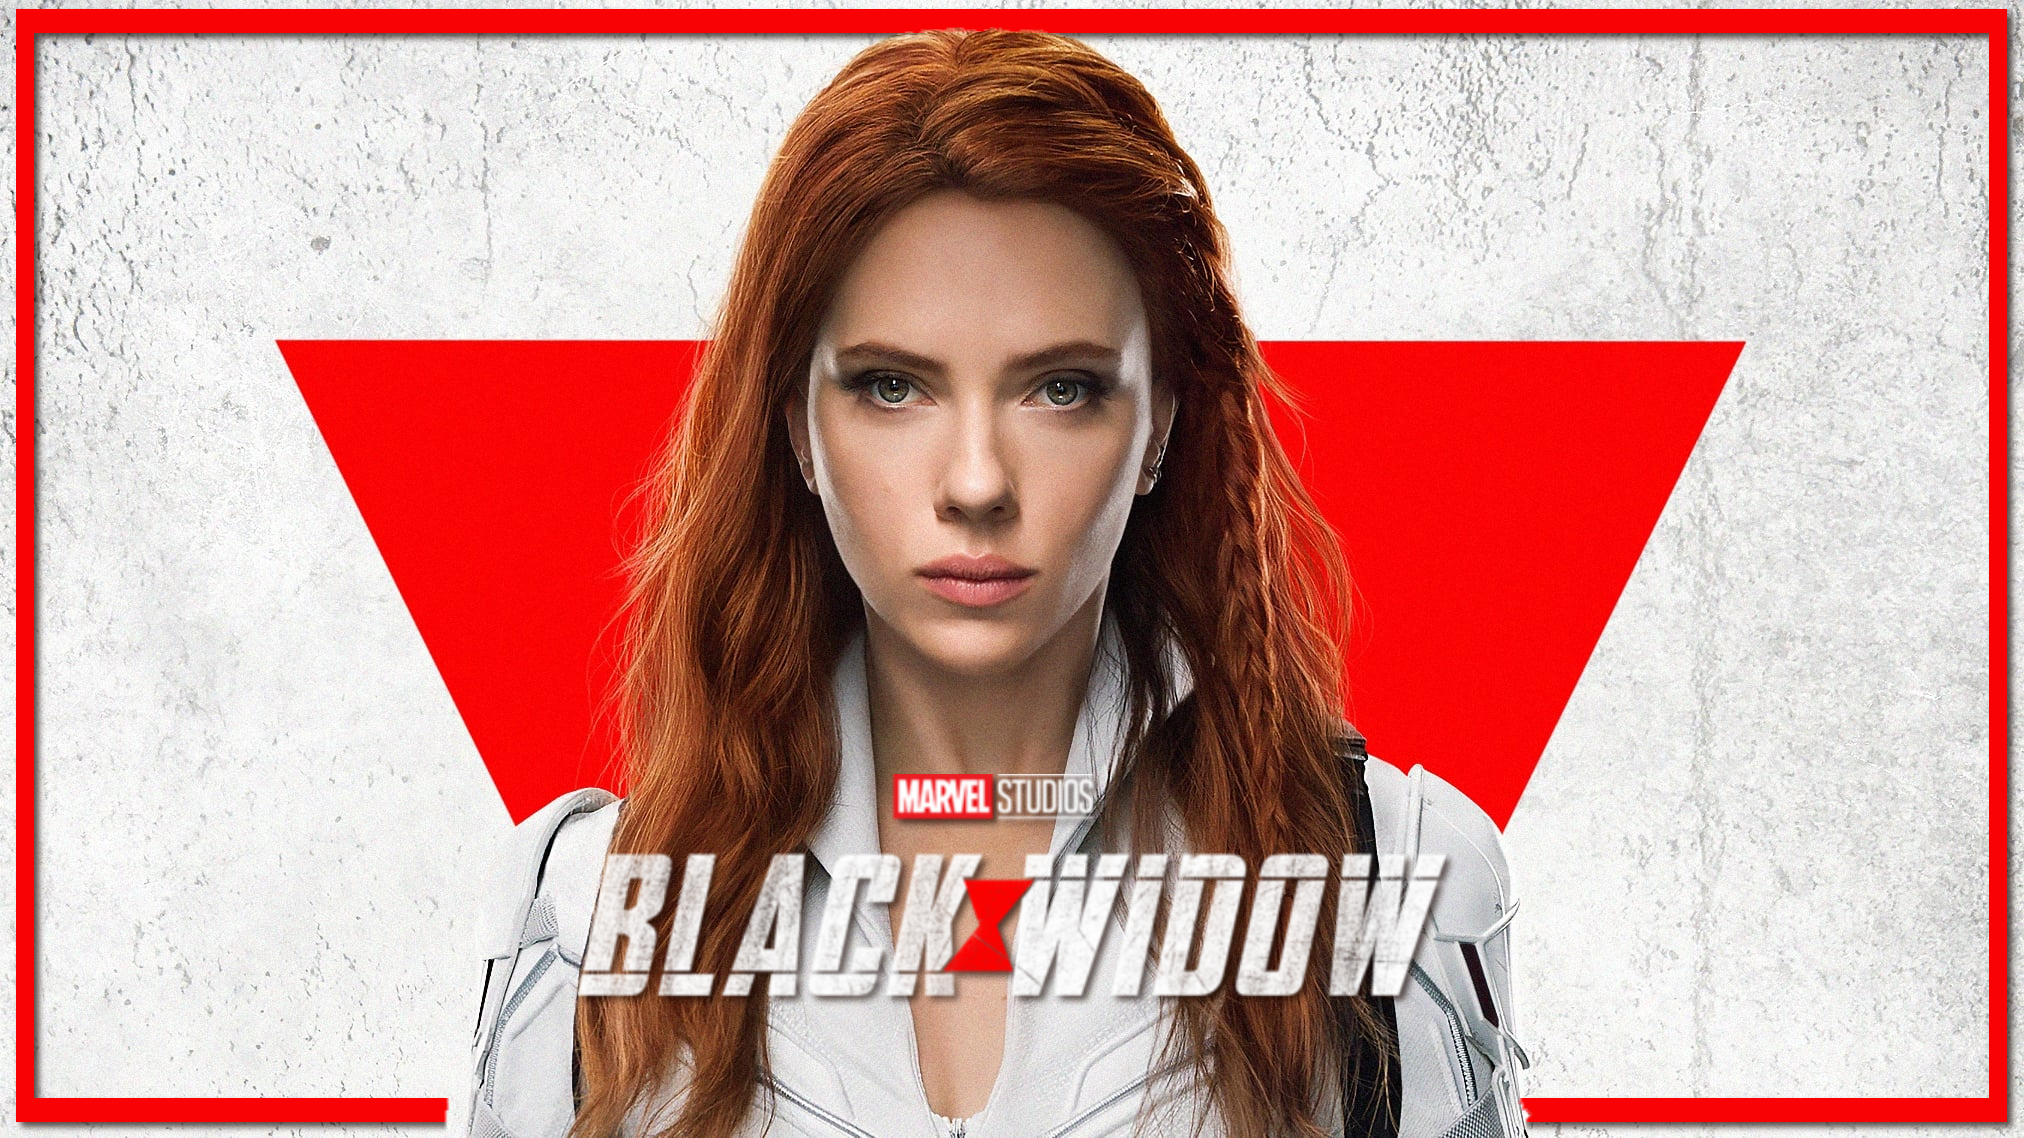 Is 'Black Widow' the Start of a New Trilogy?